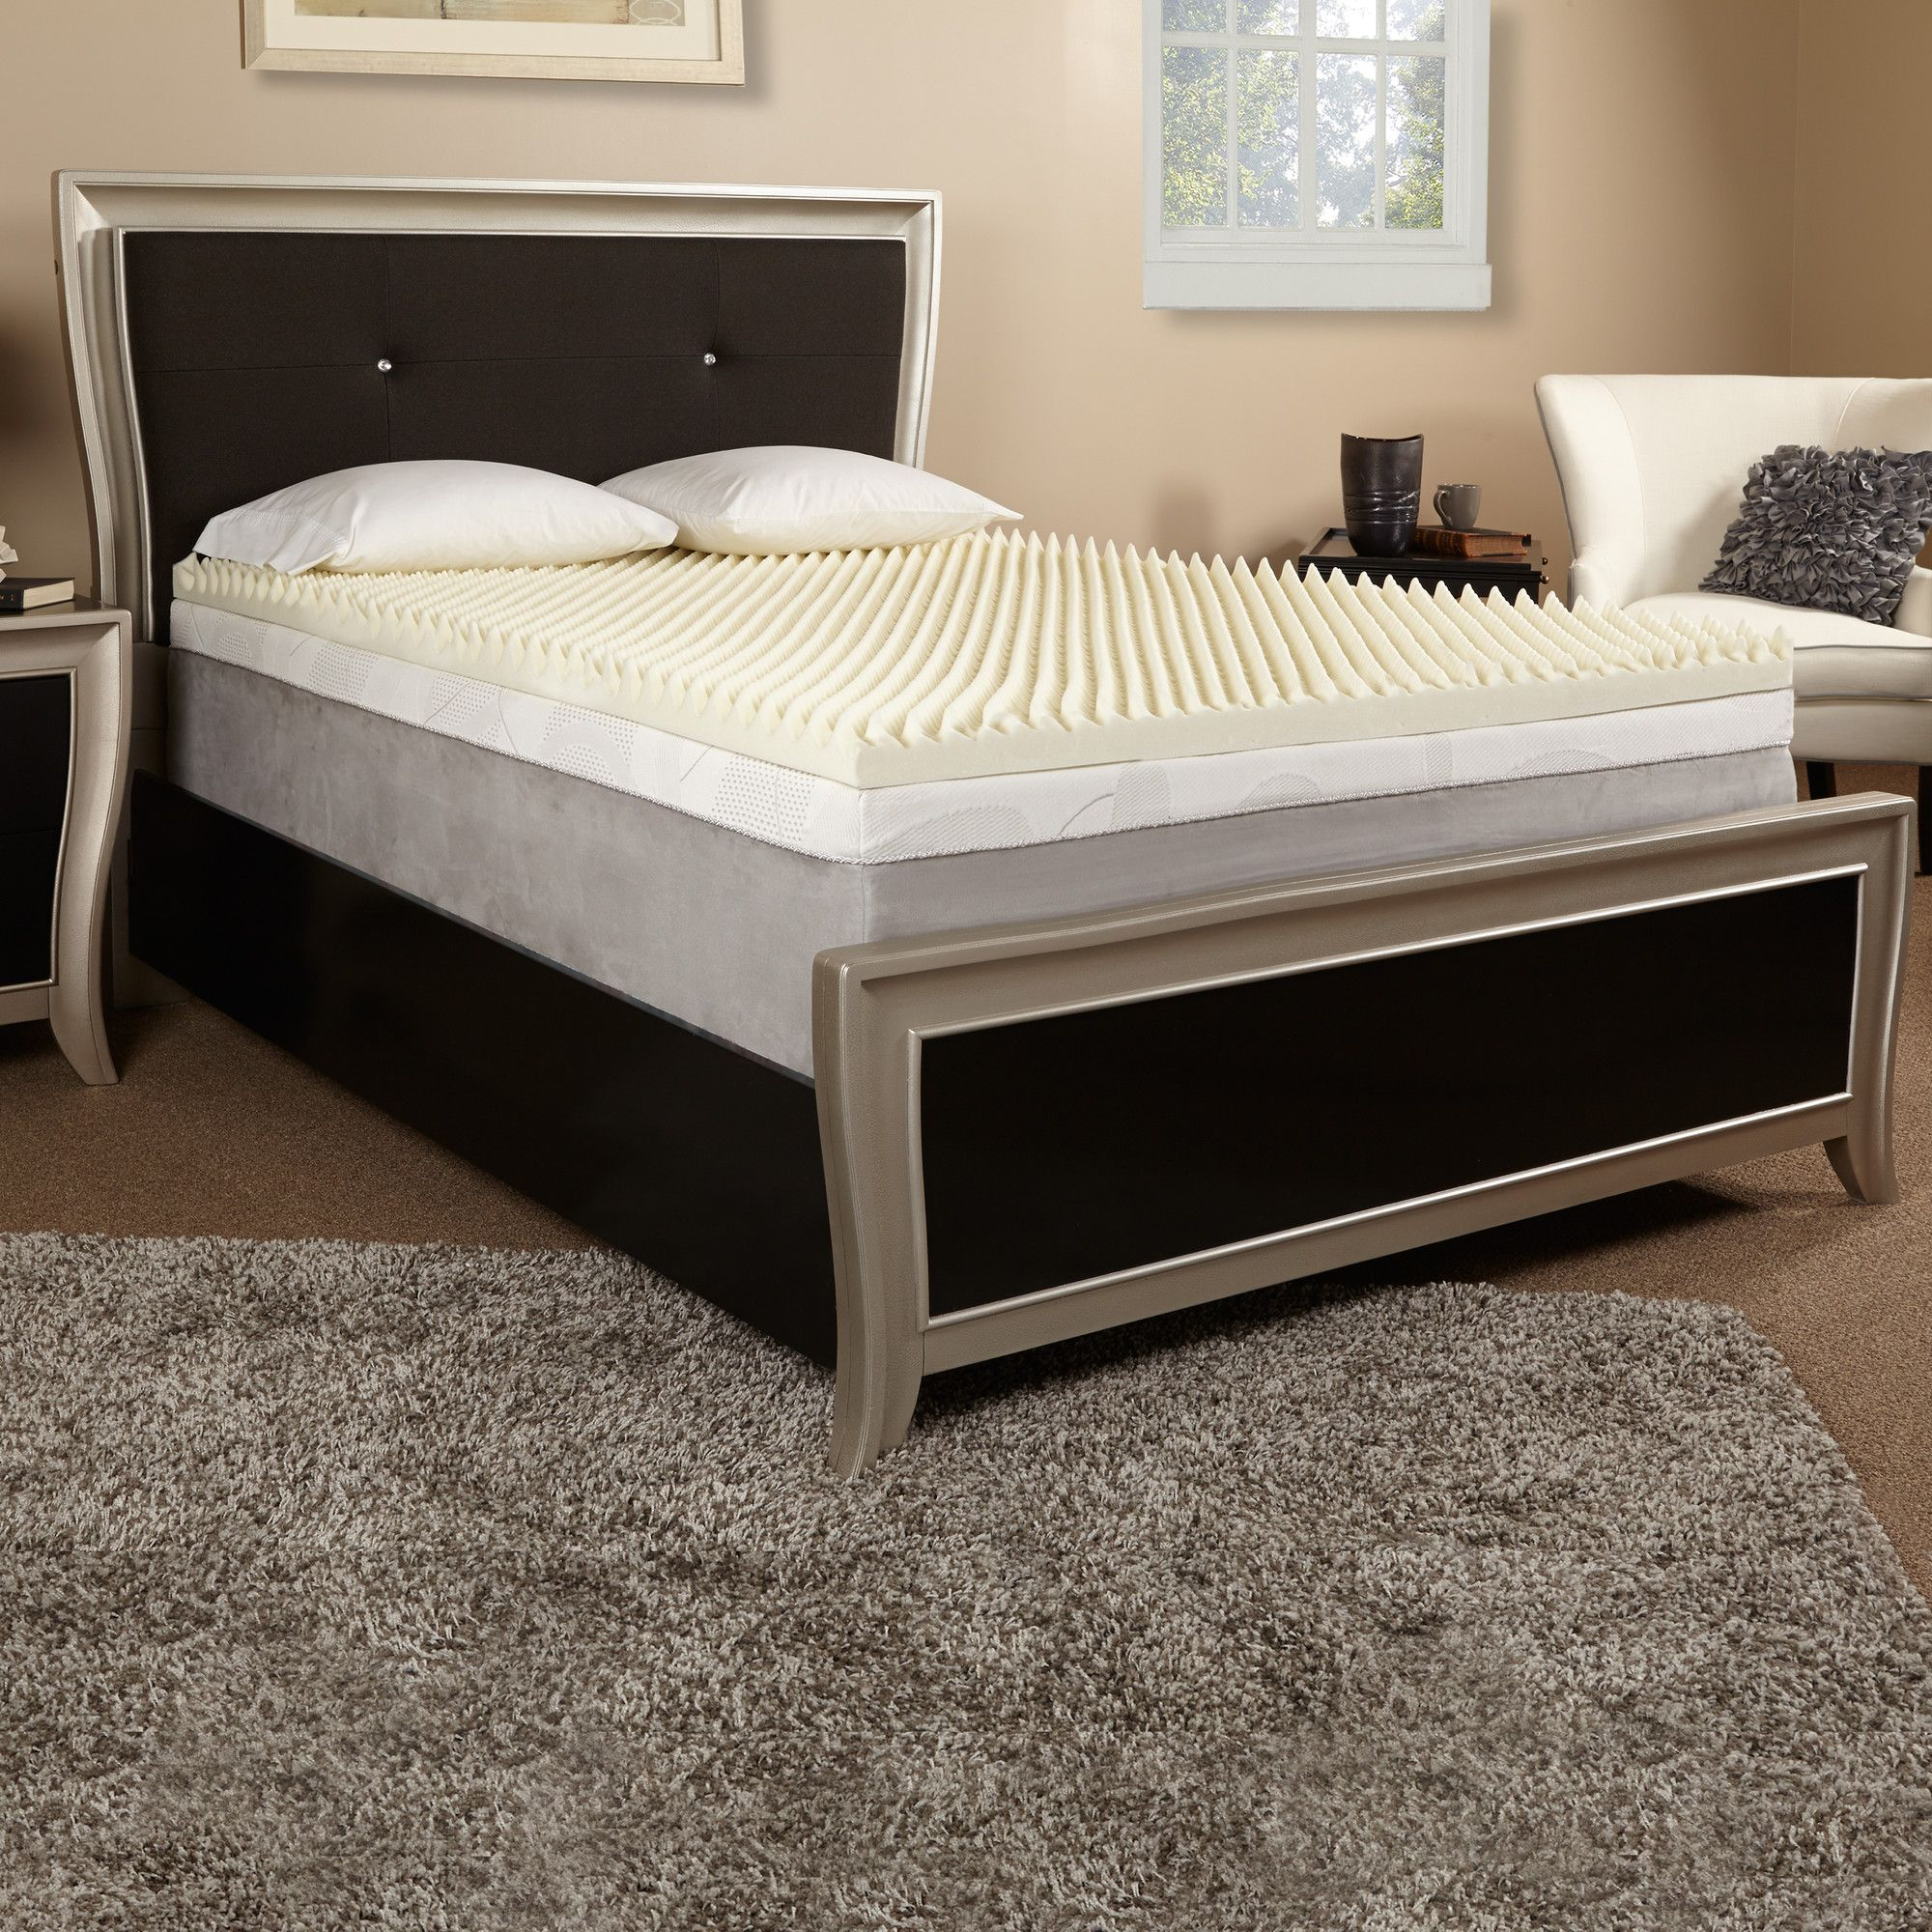 3 Textured Memory Foam Mattress Topper Memory Foam Mattress